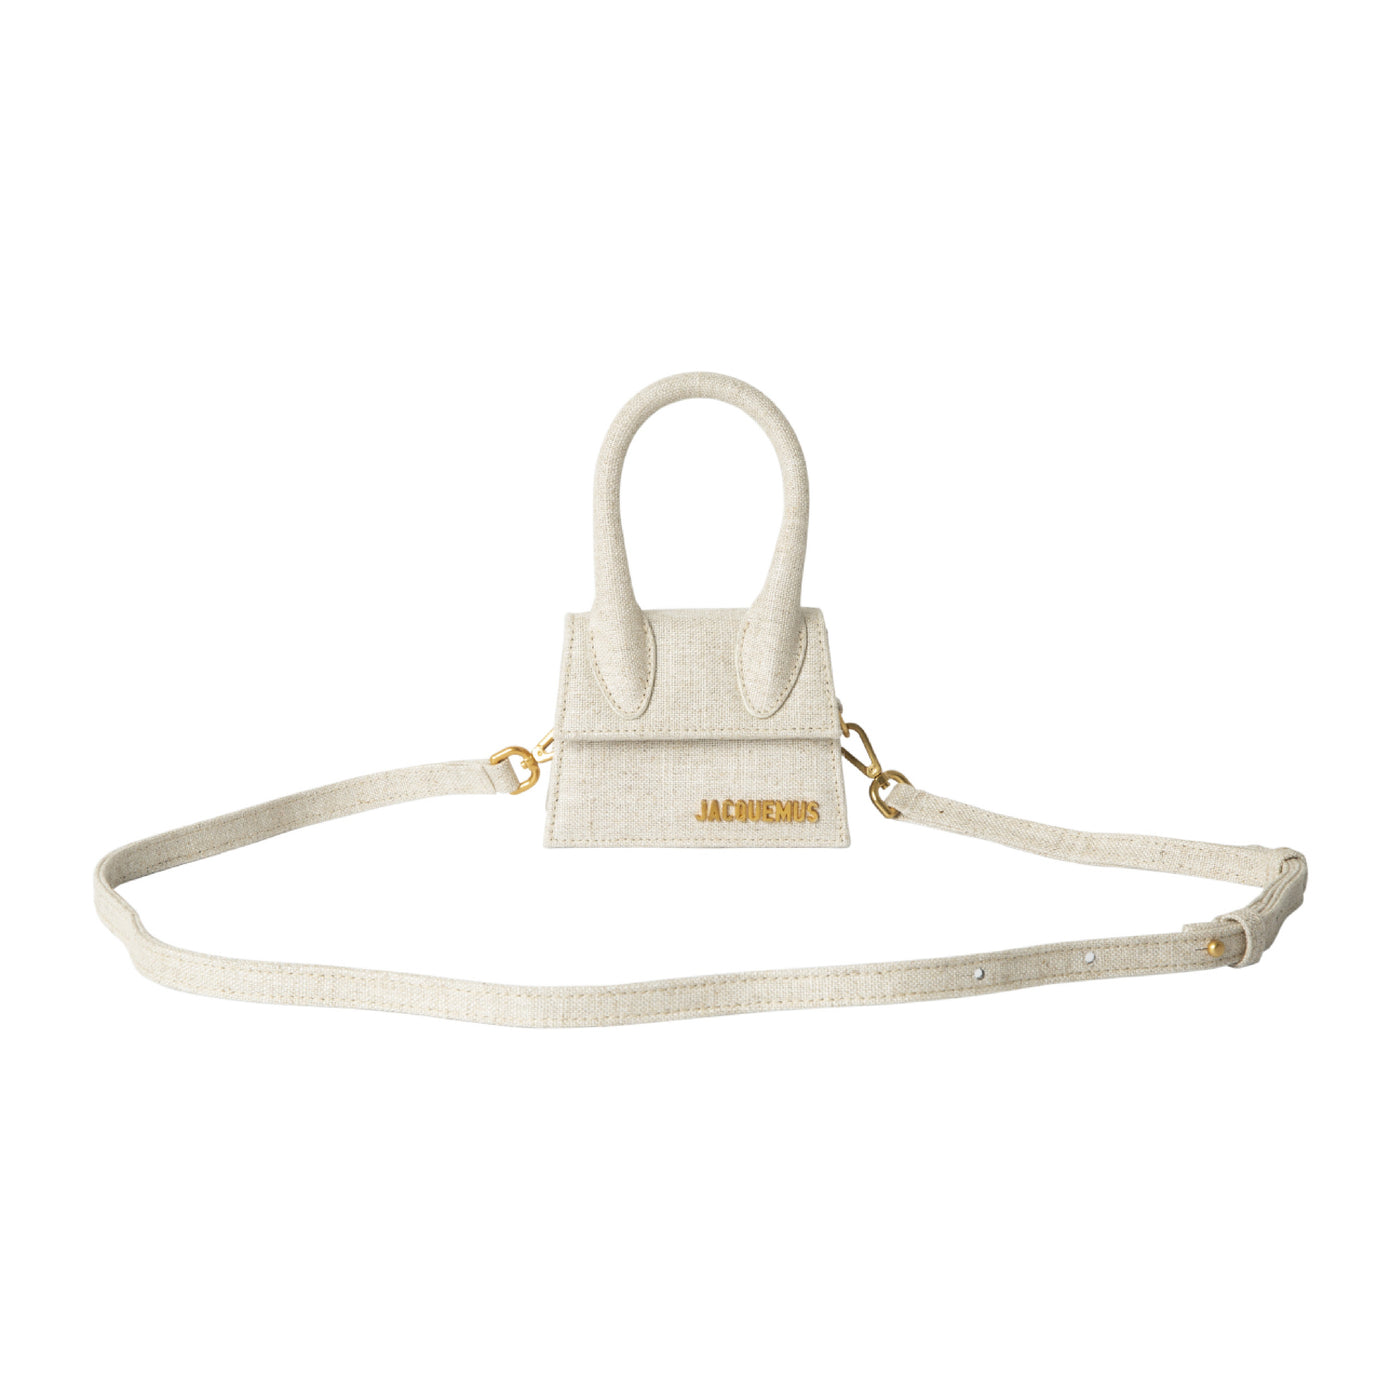 Load image into Gallery viewer, JACQUEMUS MINI LINEN-BLEND SATCHEL NEUTRAL